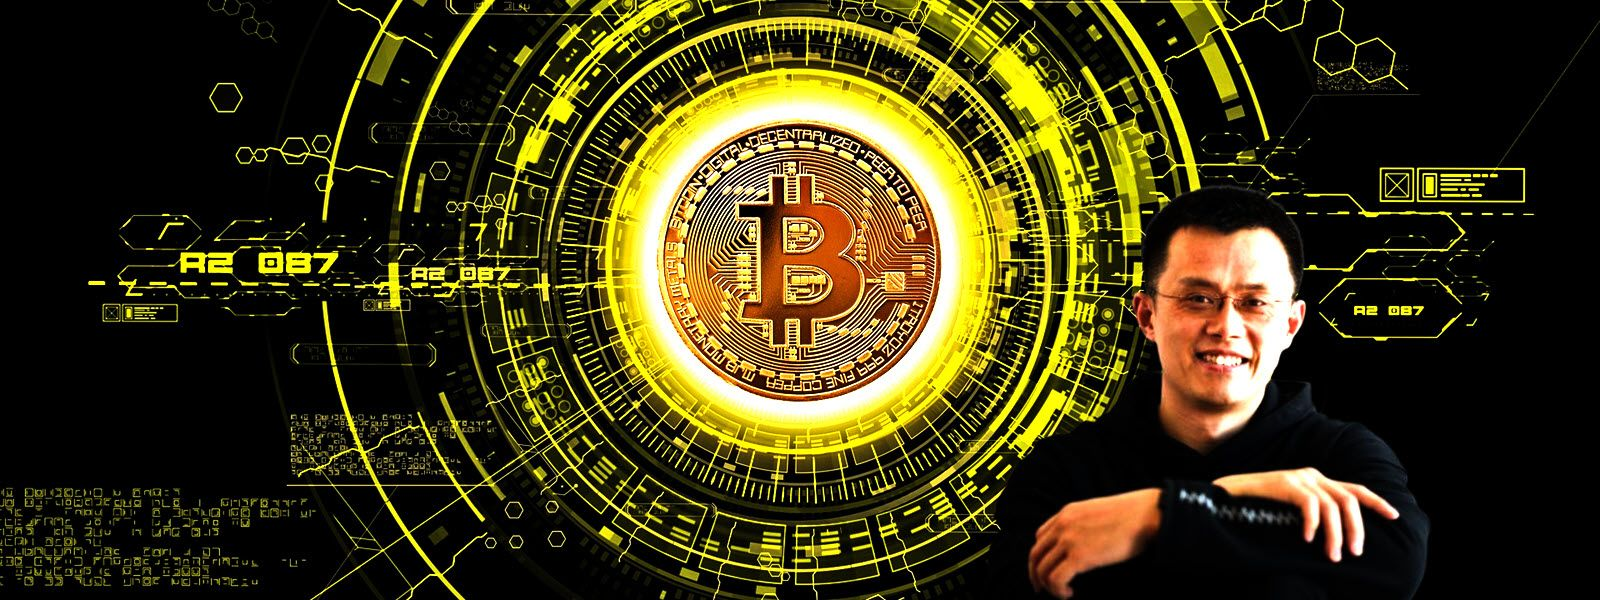 /bitcoin-2021-a-brief-interview-with-changpeng-zhao-7jh32js feature image